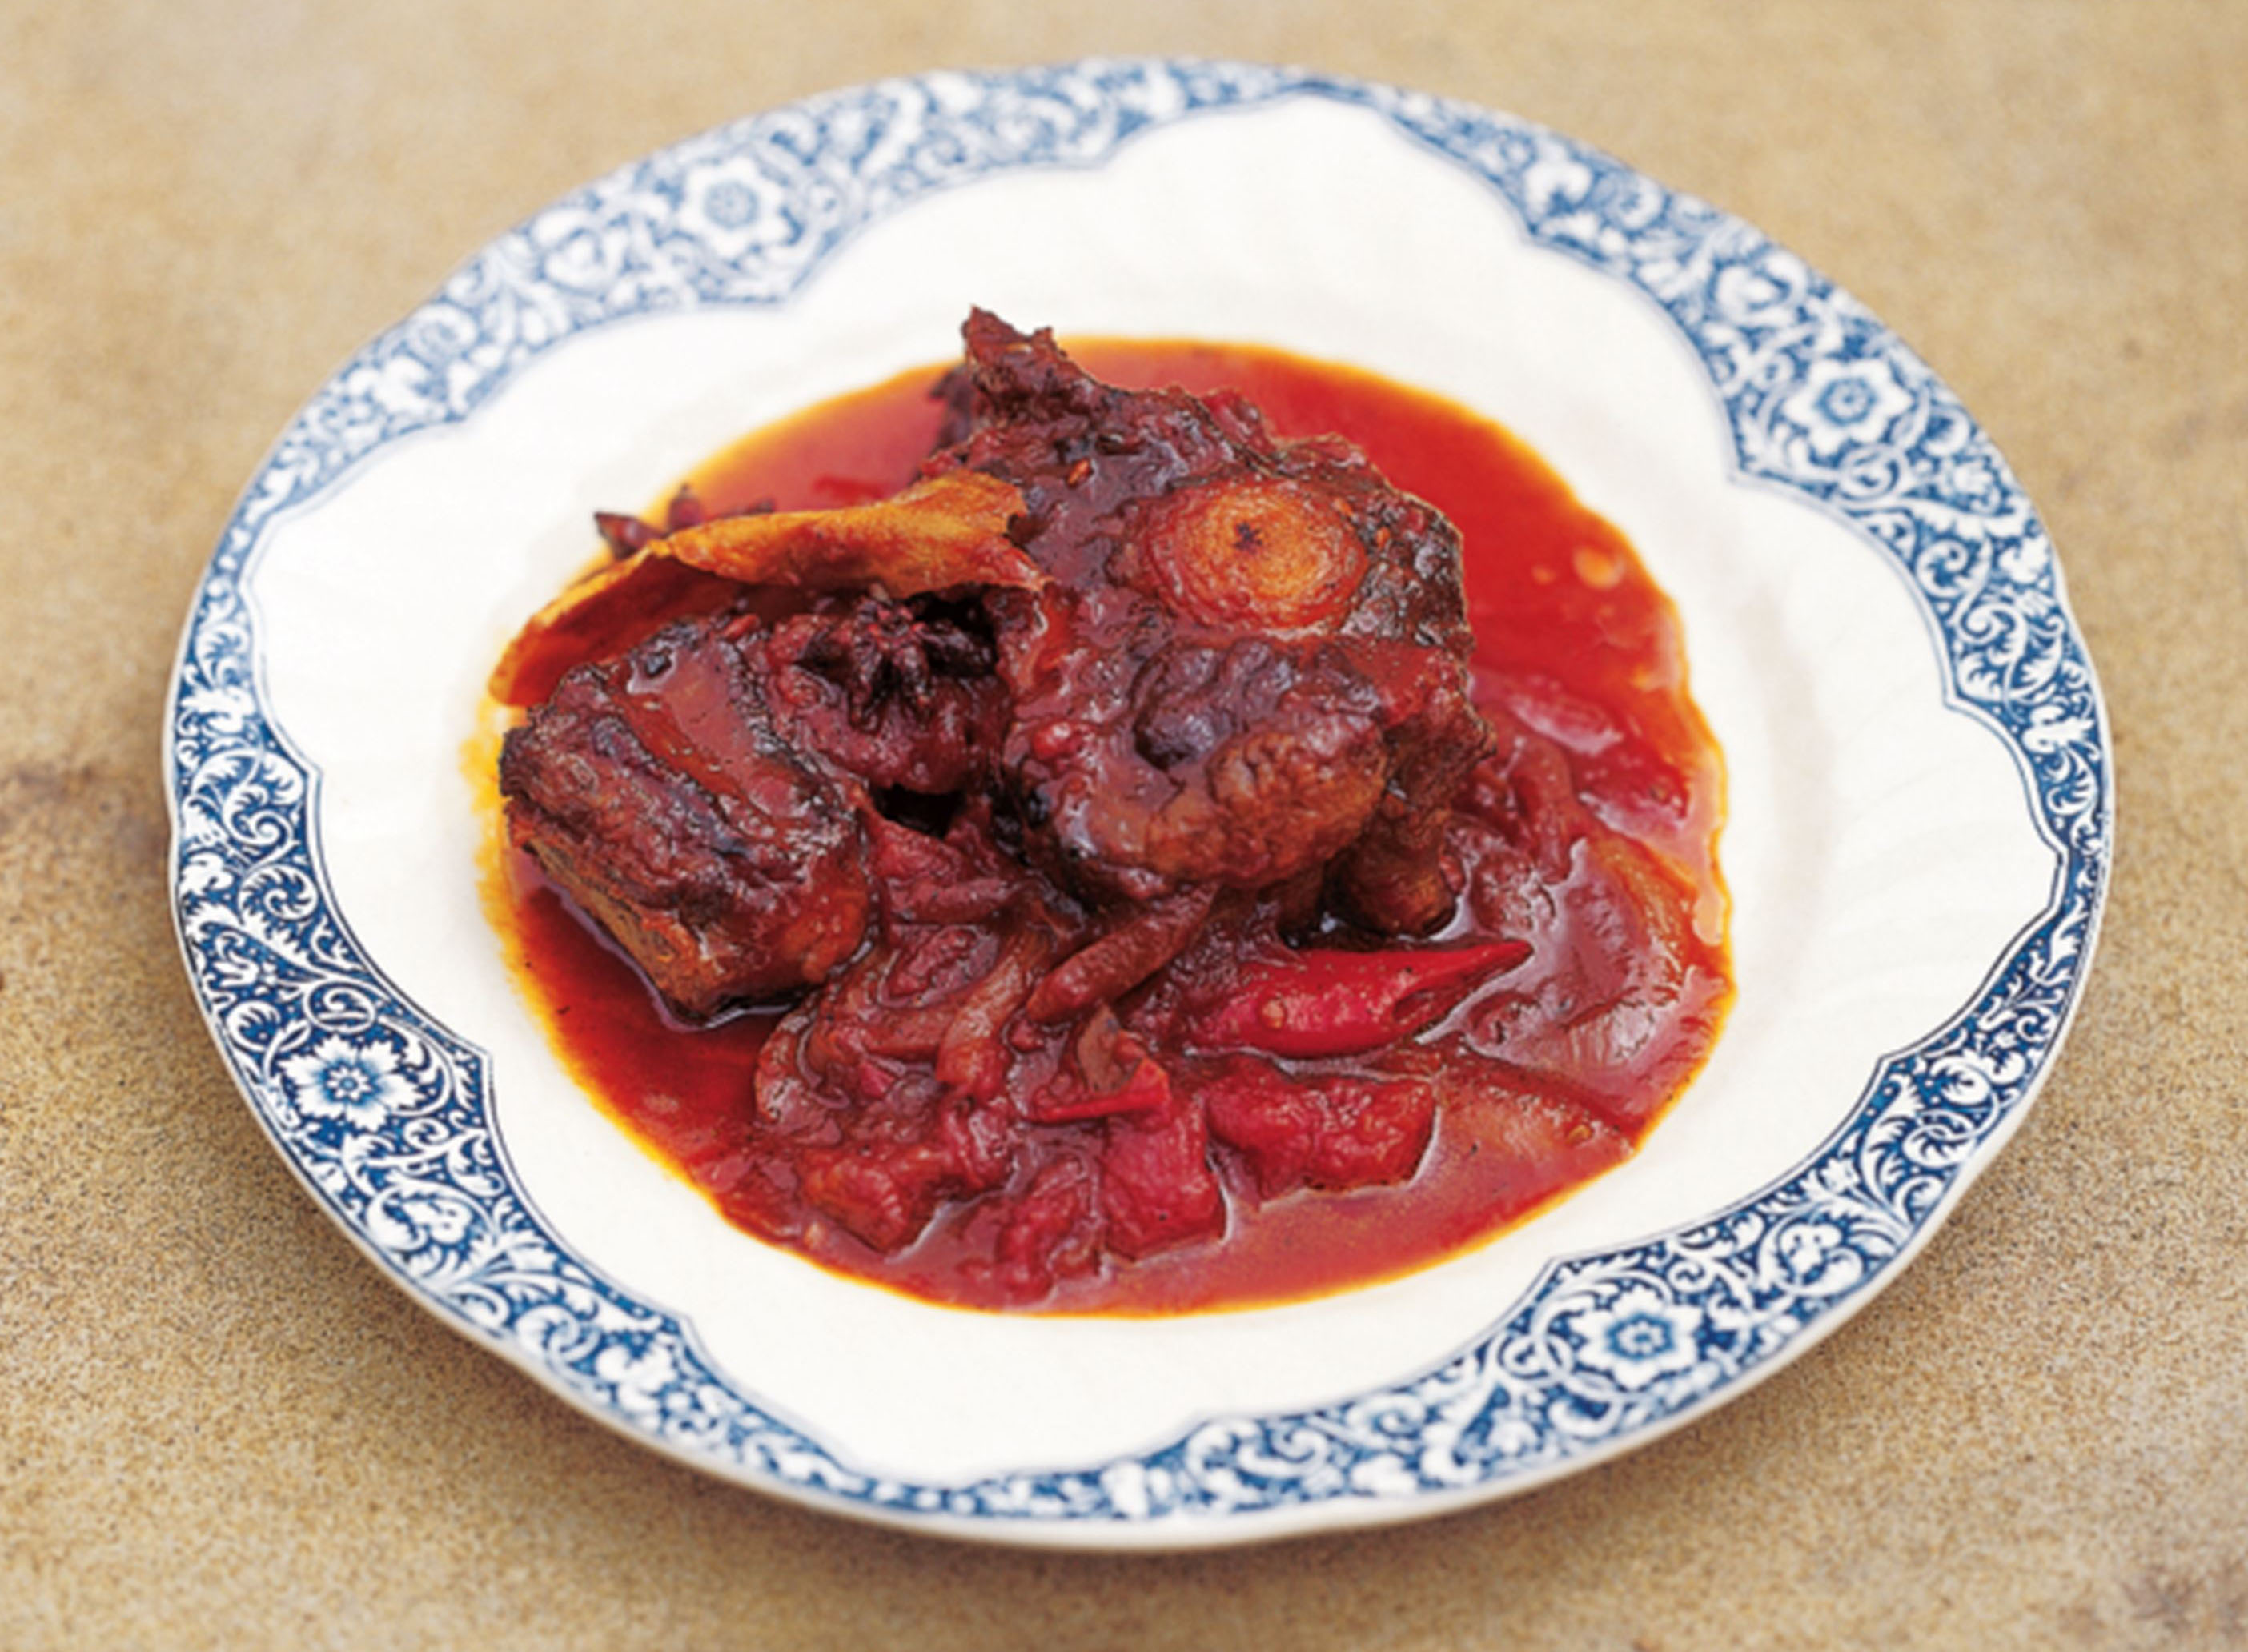 Braised oxtail with ginger, five spice and garlic